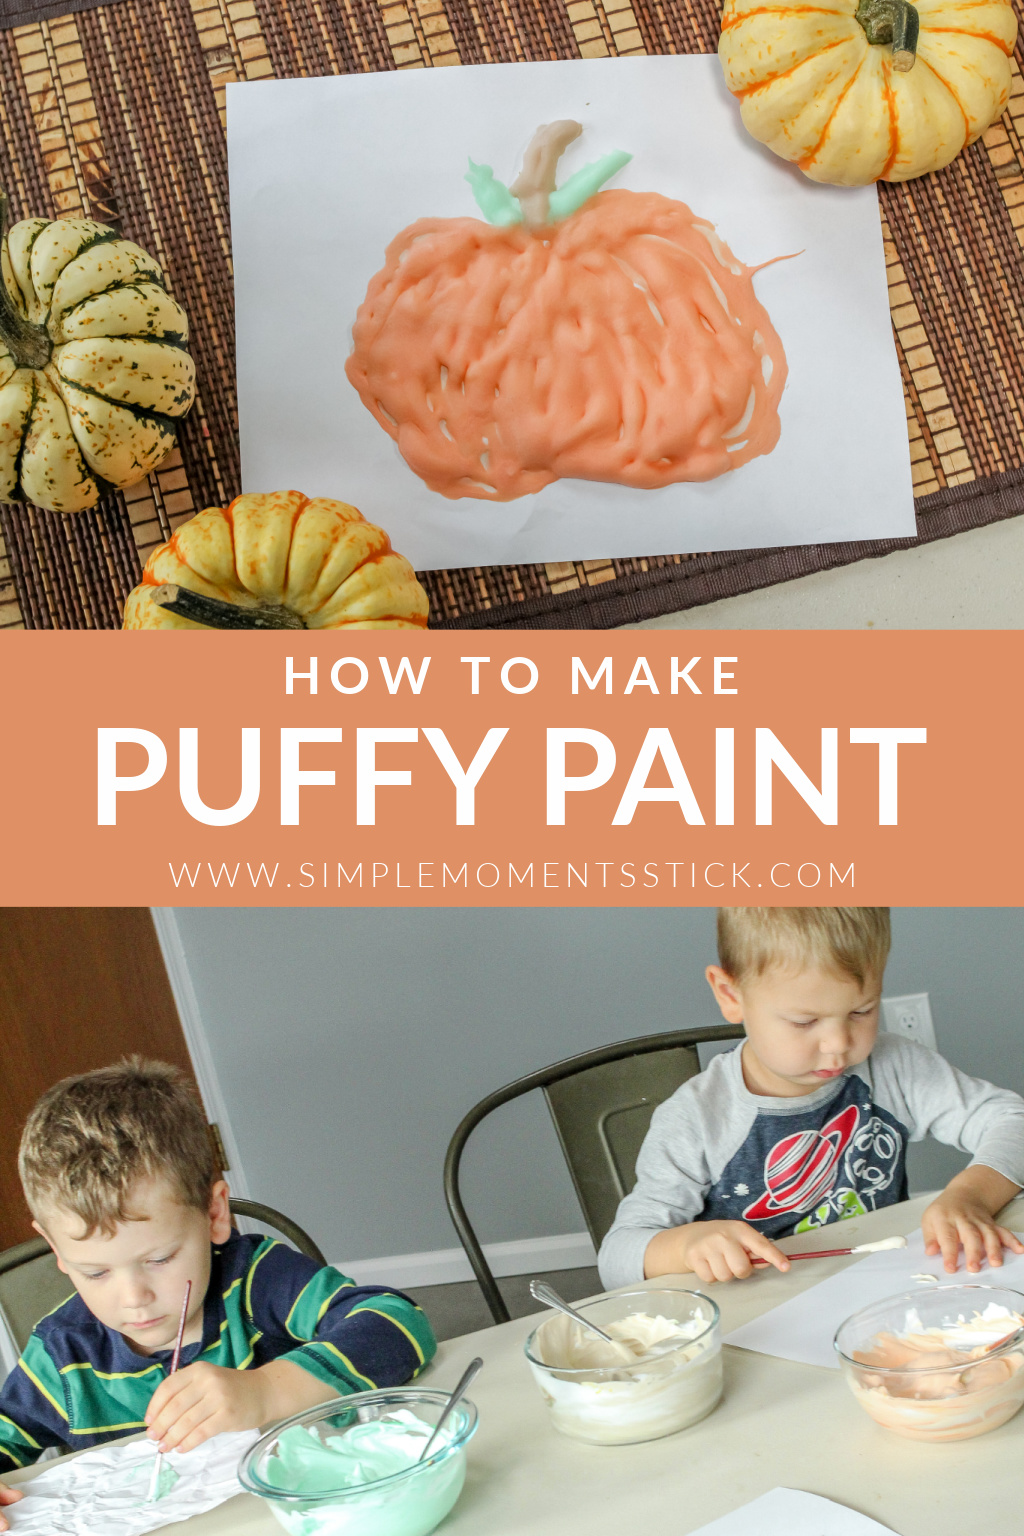 How to make puffy paint